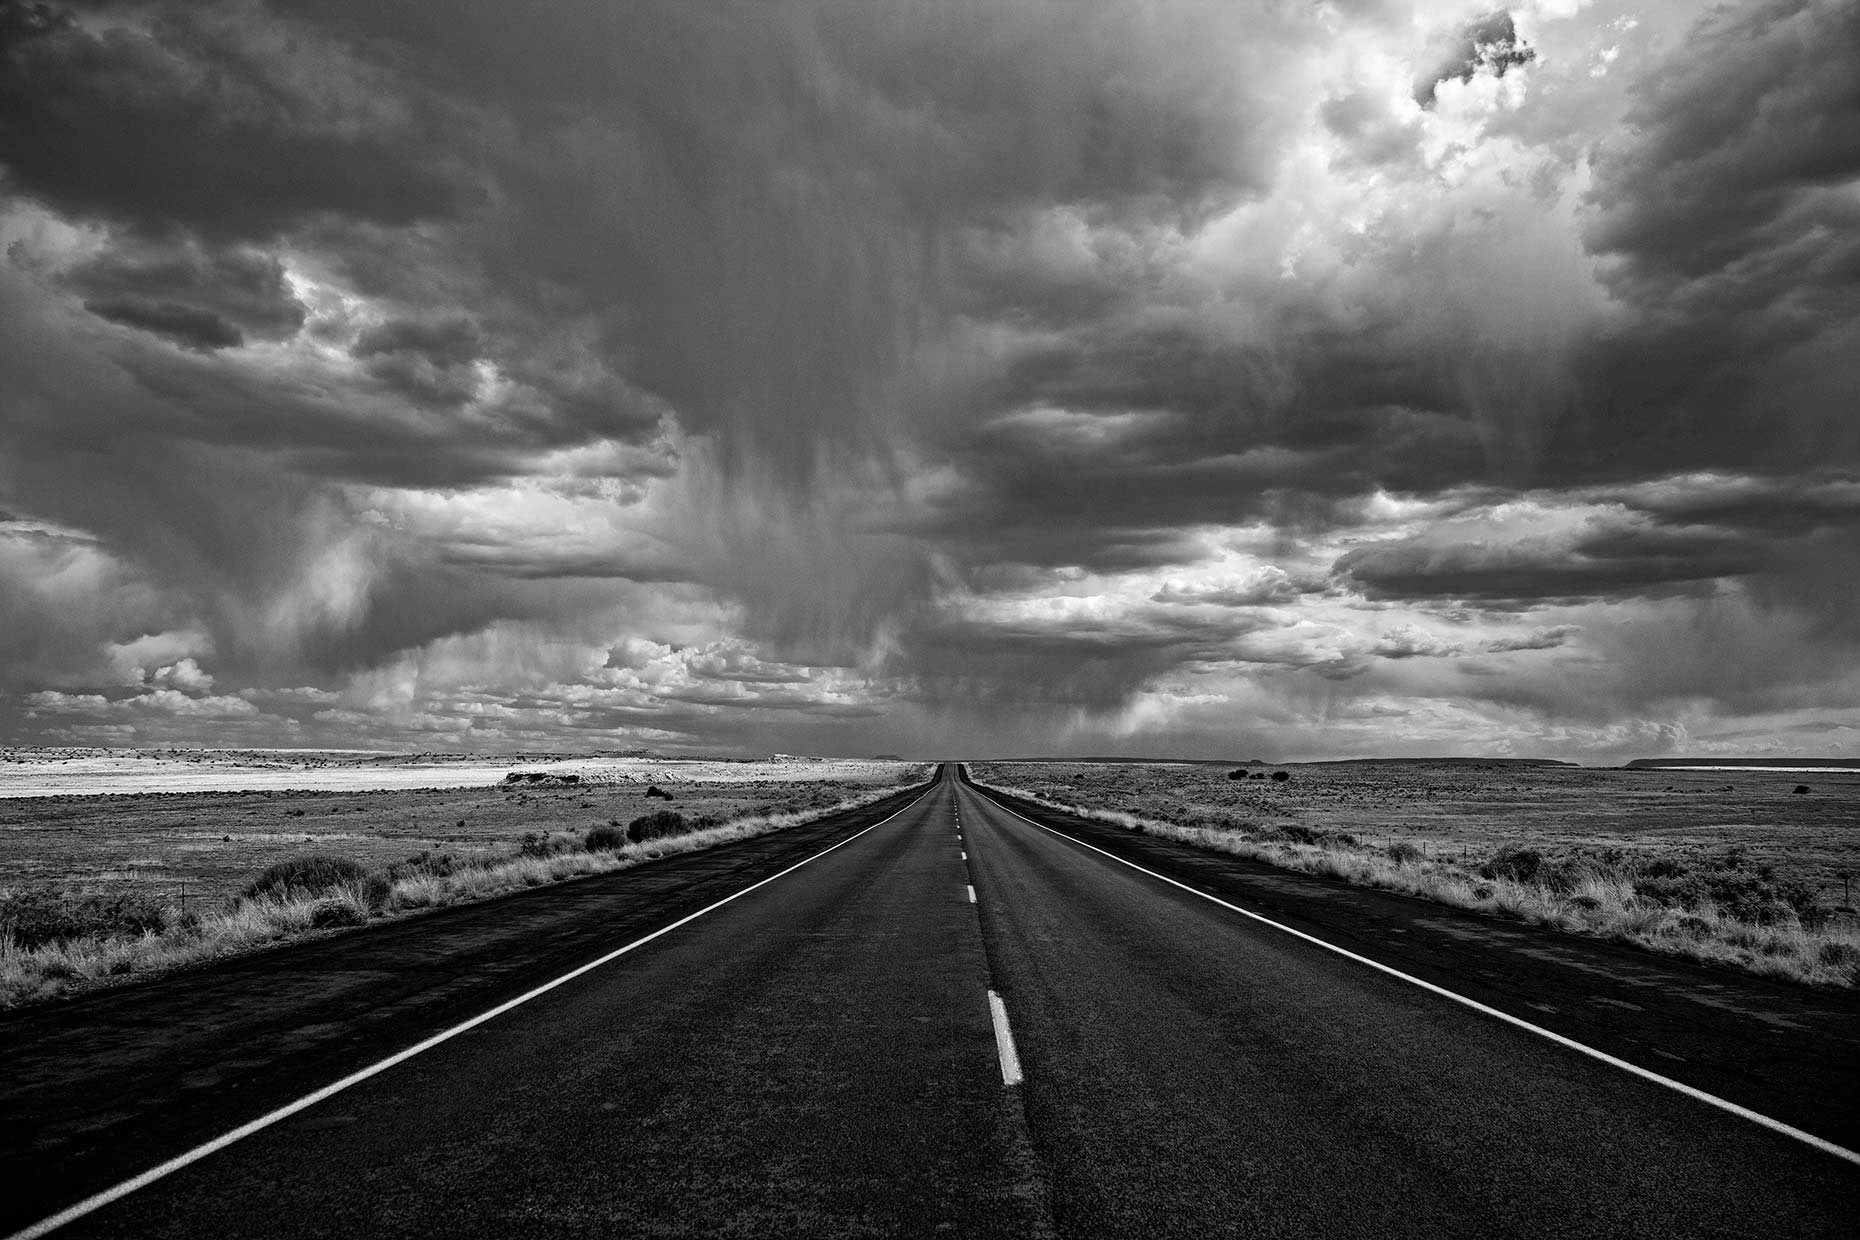 Storm Along New Mexico Highway - Black & White